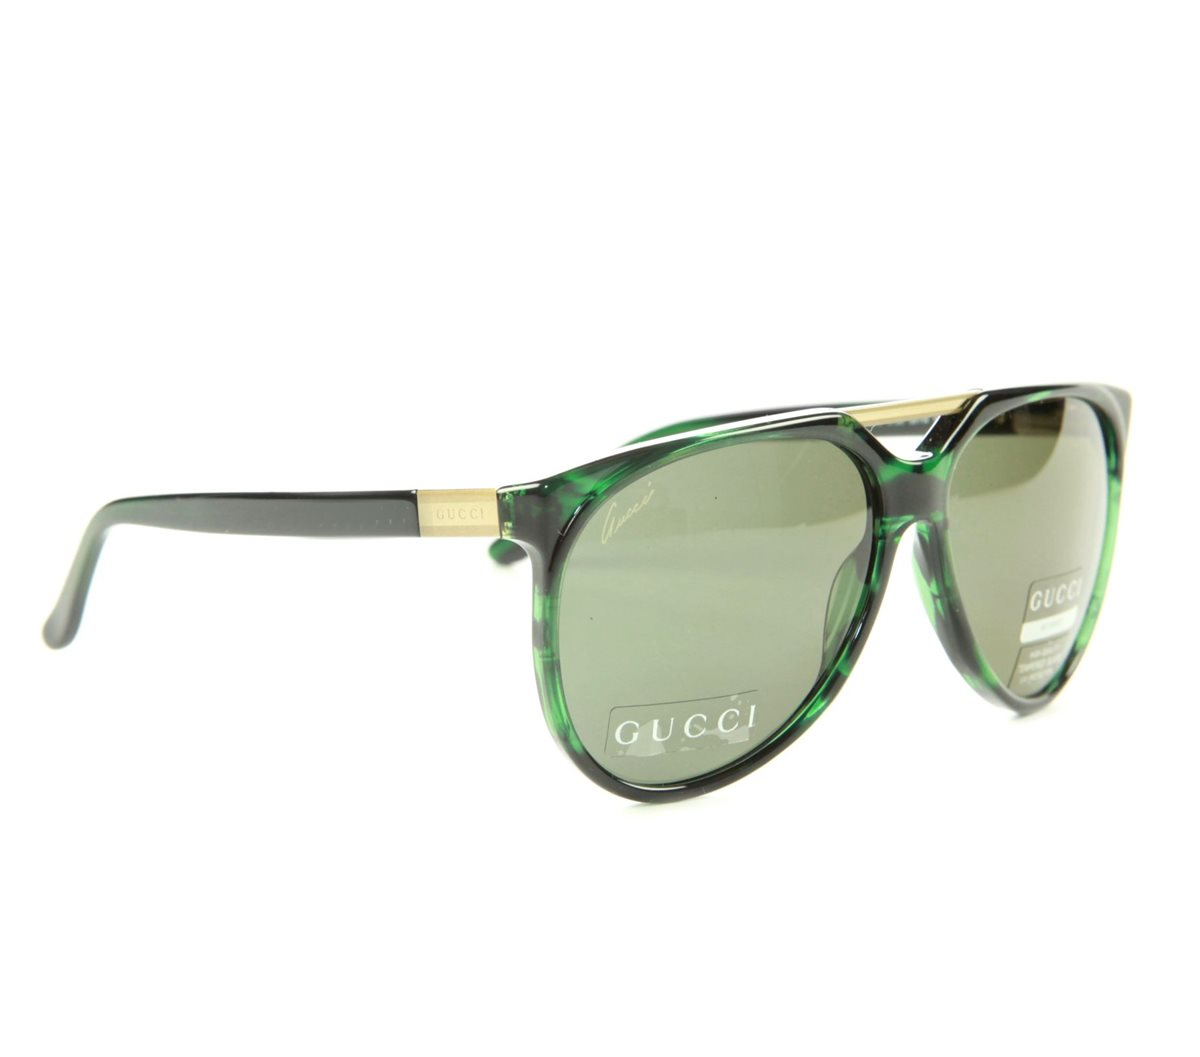 gucci damen herren sonnenbrille havanna green 3501 b s 9p5 luxus premium etui ebay. Black Bedroom Furniture Sets. Home Design Ideas